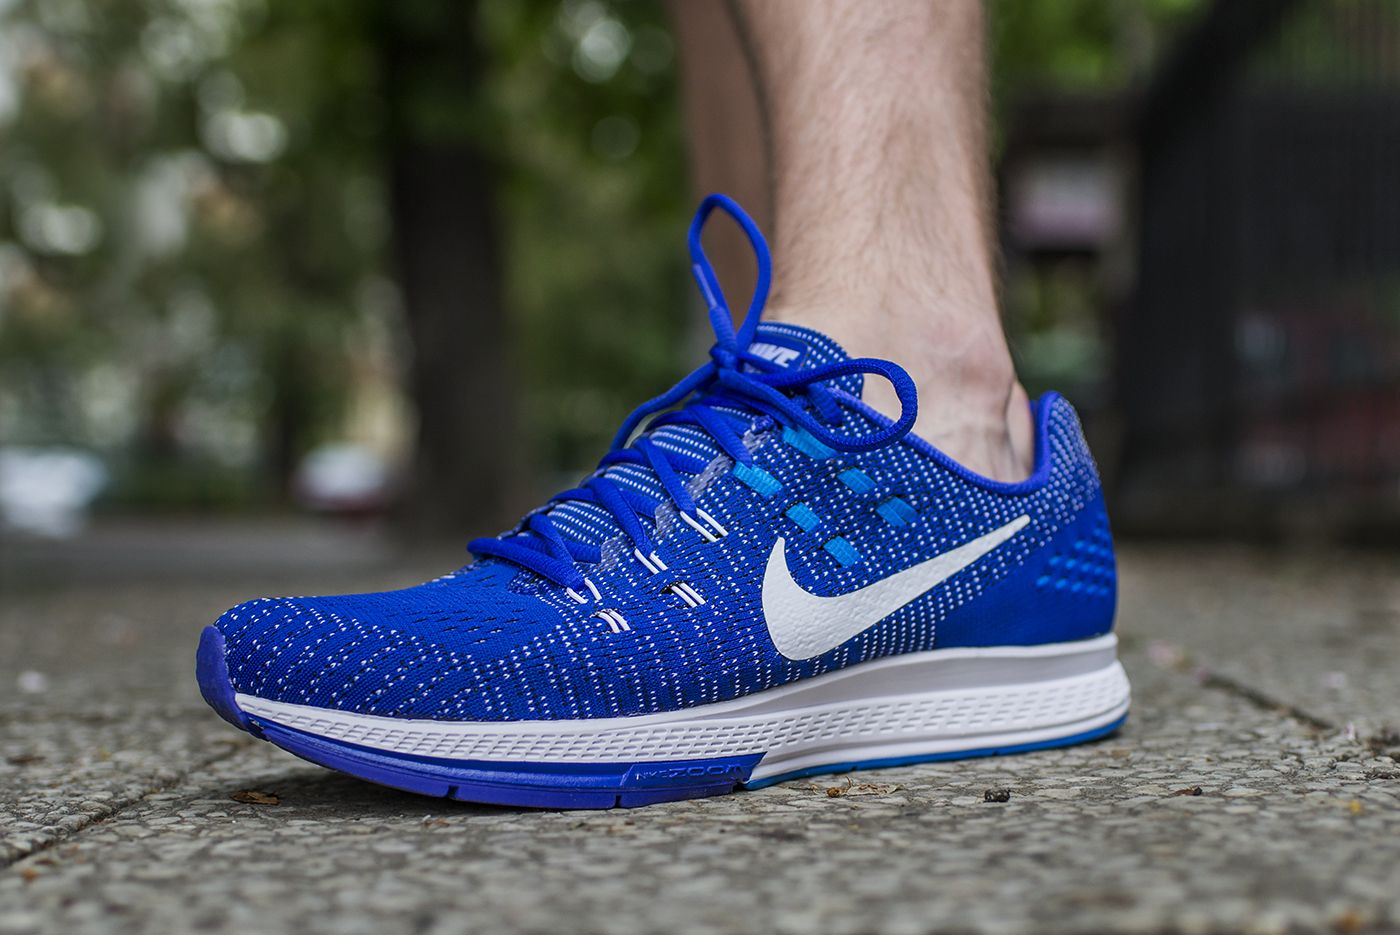 Buty Do Biegania Nike Air Zoom Structure 19 Sklepbiegowy Com Nike Nike Air Nike Air Zoom